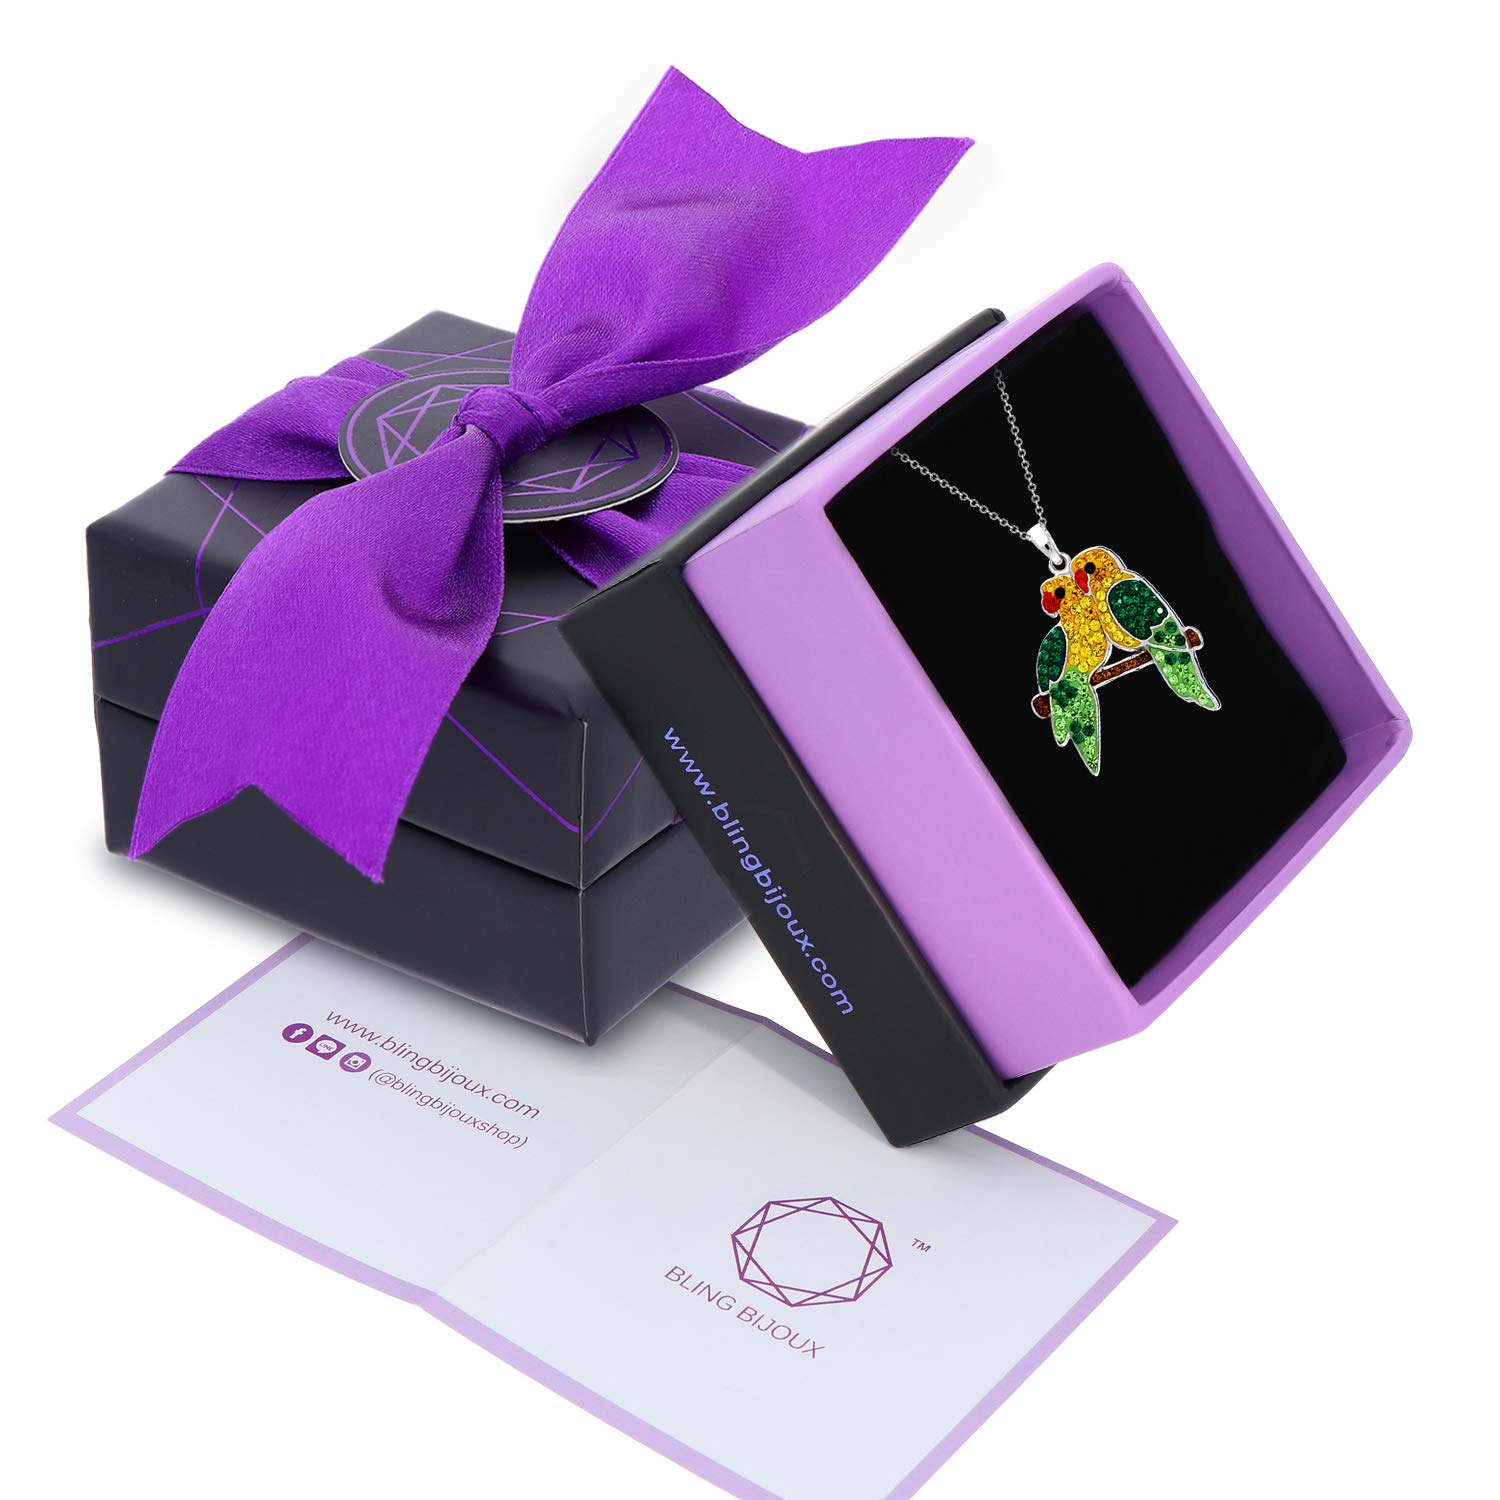 Natural /& Hypoallergenic Chain with Free Breathtaking Gift Box for Special Moments of Love Crystal Scarlet Macaw Bird Parrot Pendant Necklace Girls /& Teens Never Rust 925 Sterling Silver for Women